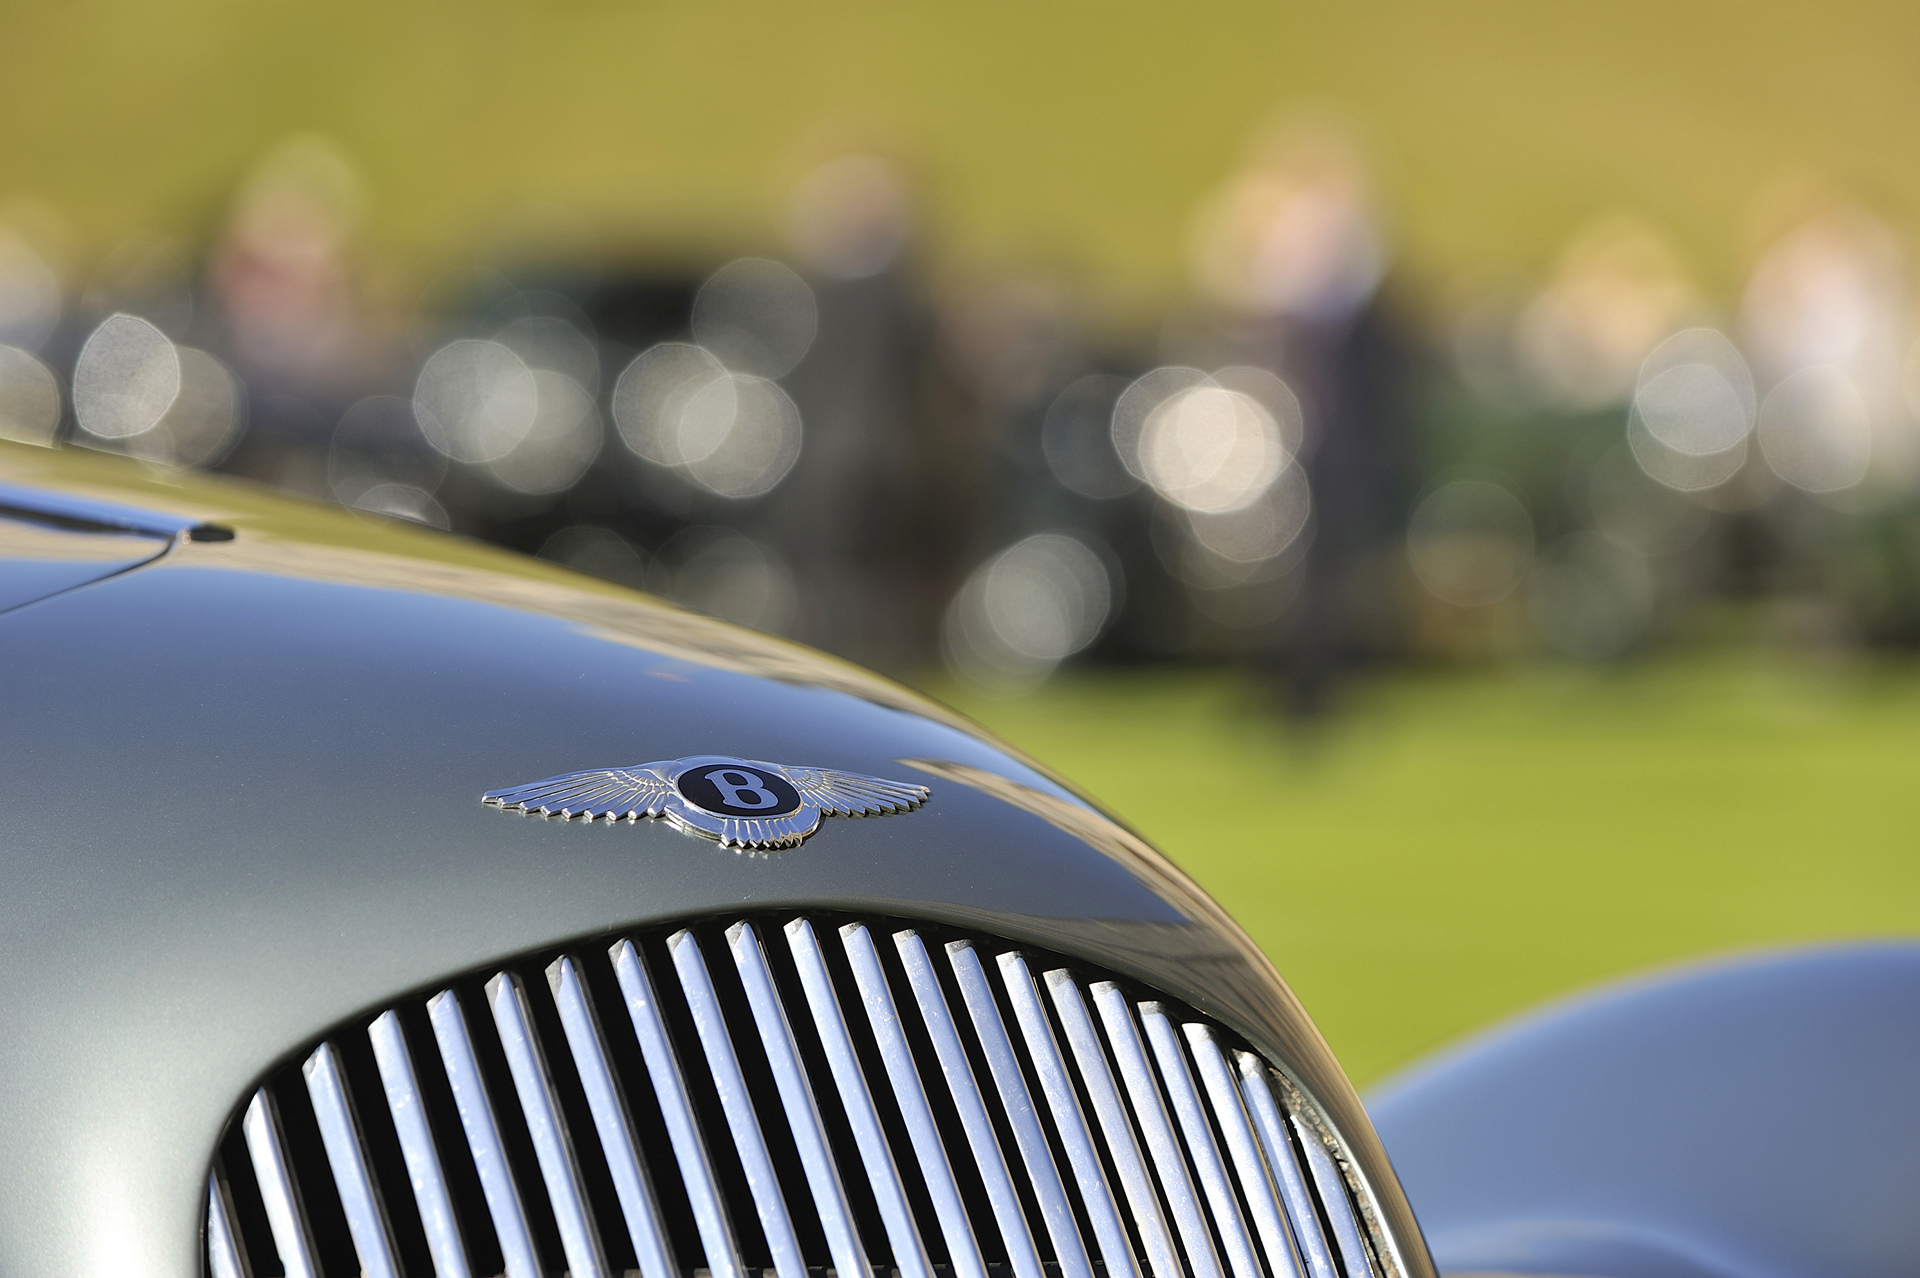 Bentley at the 2016 Concours of Elegance © Volkswagen AG